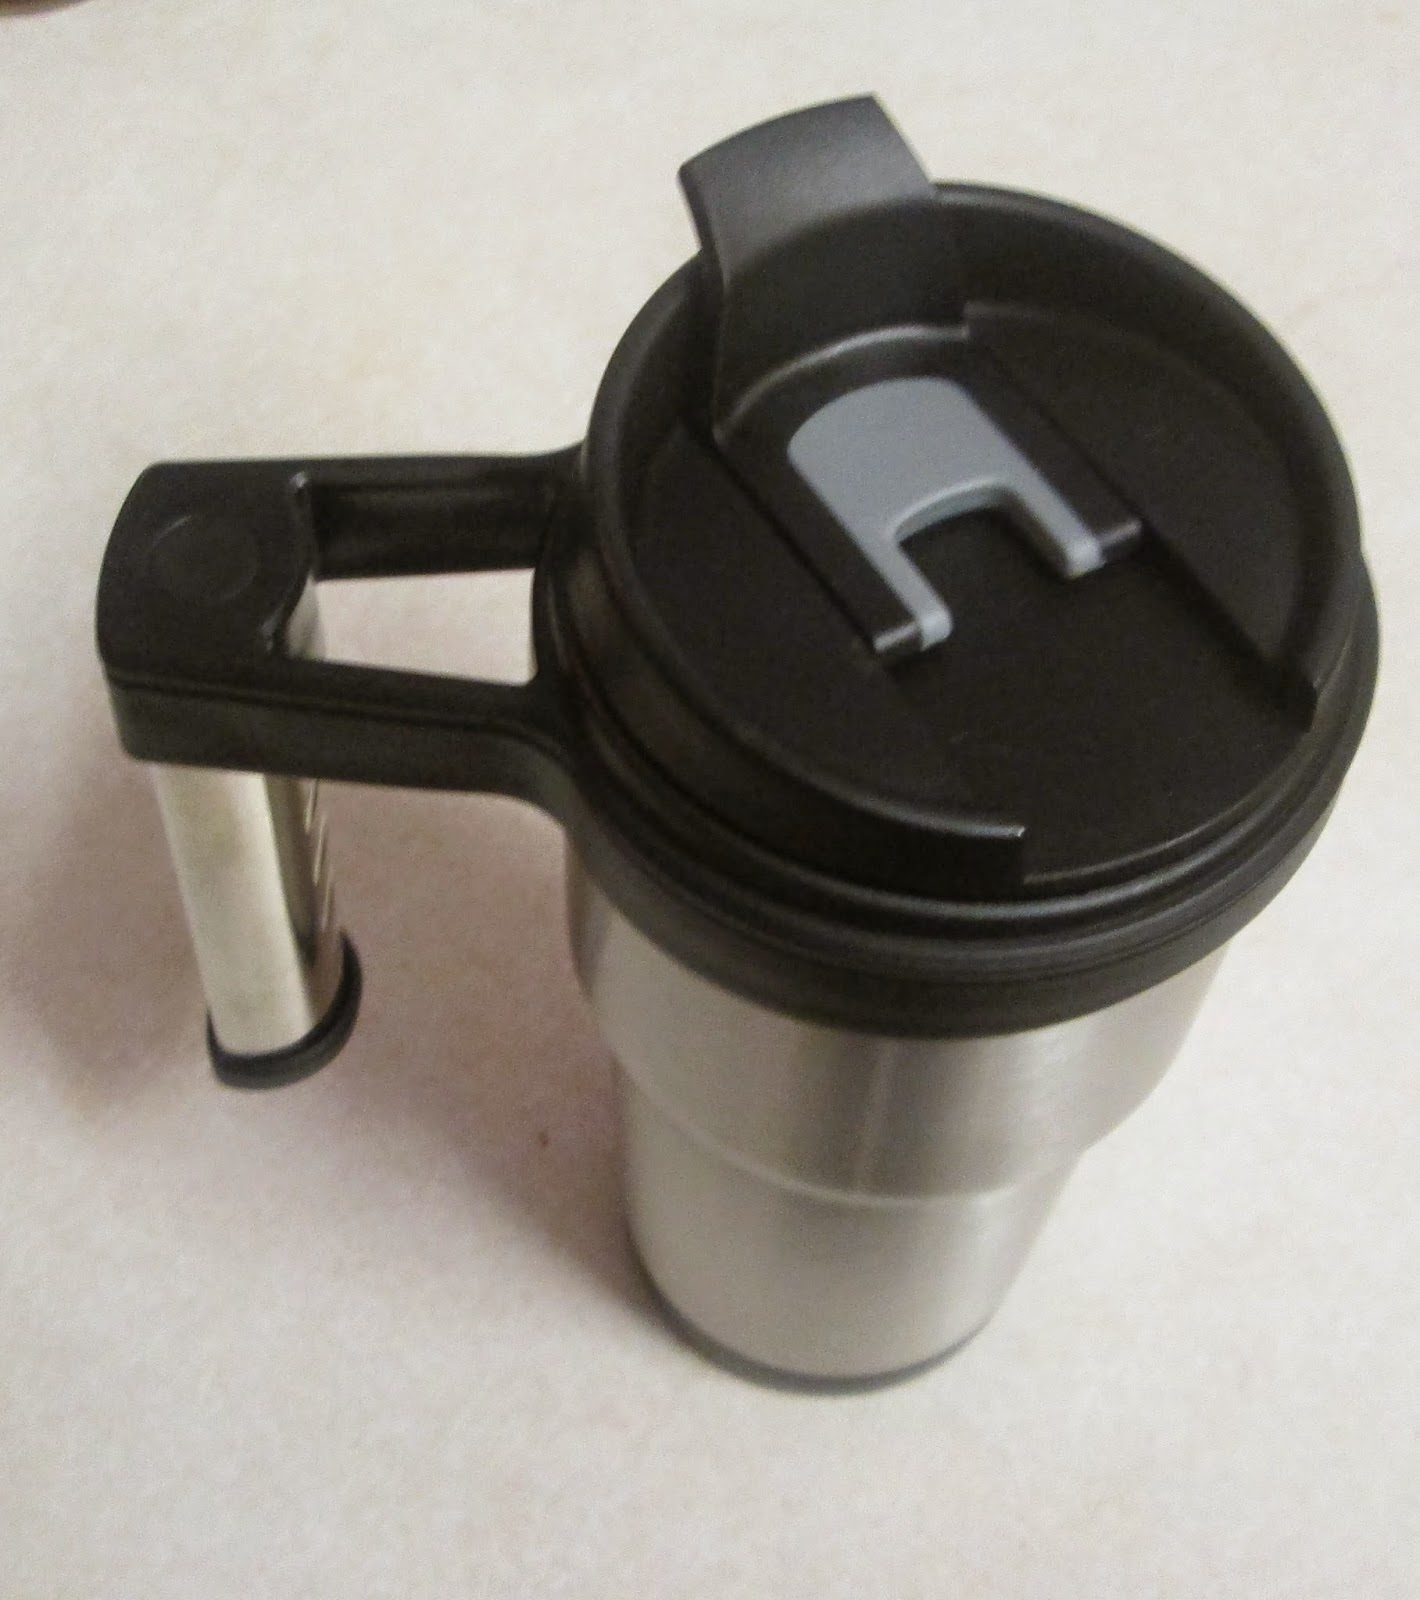 Nice Travel Mug Mommie Of 2 Insulated Travel Mug Review Doublewallmugs